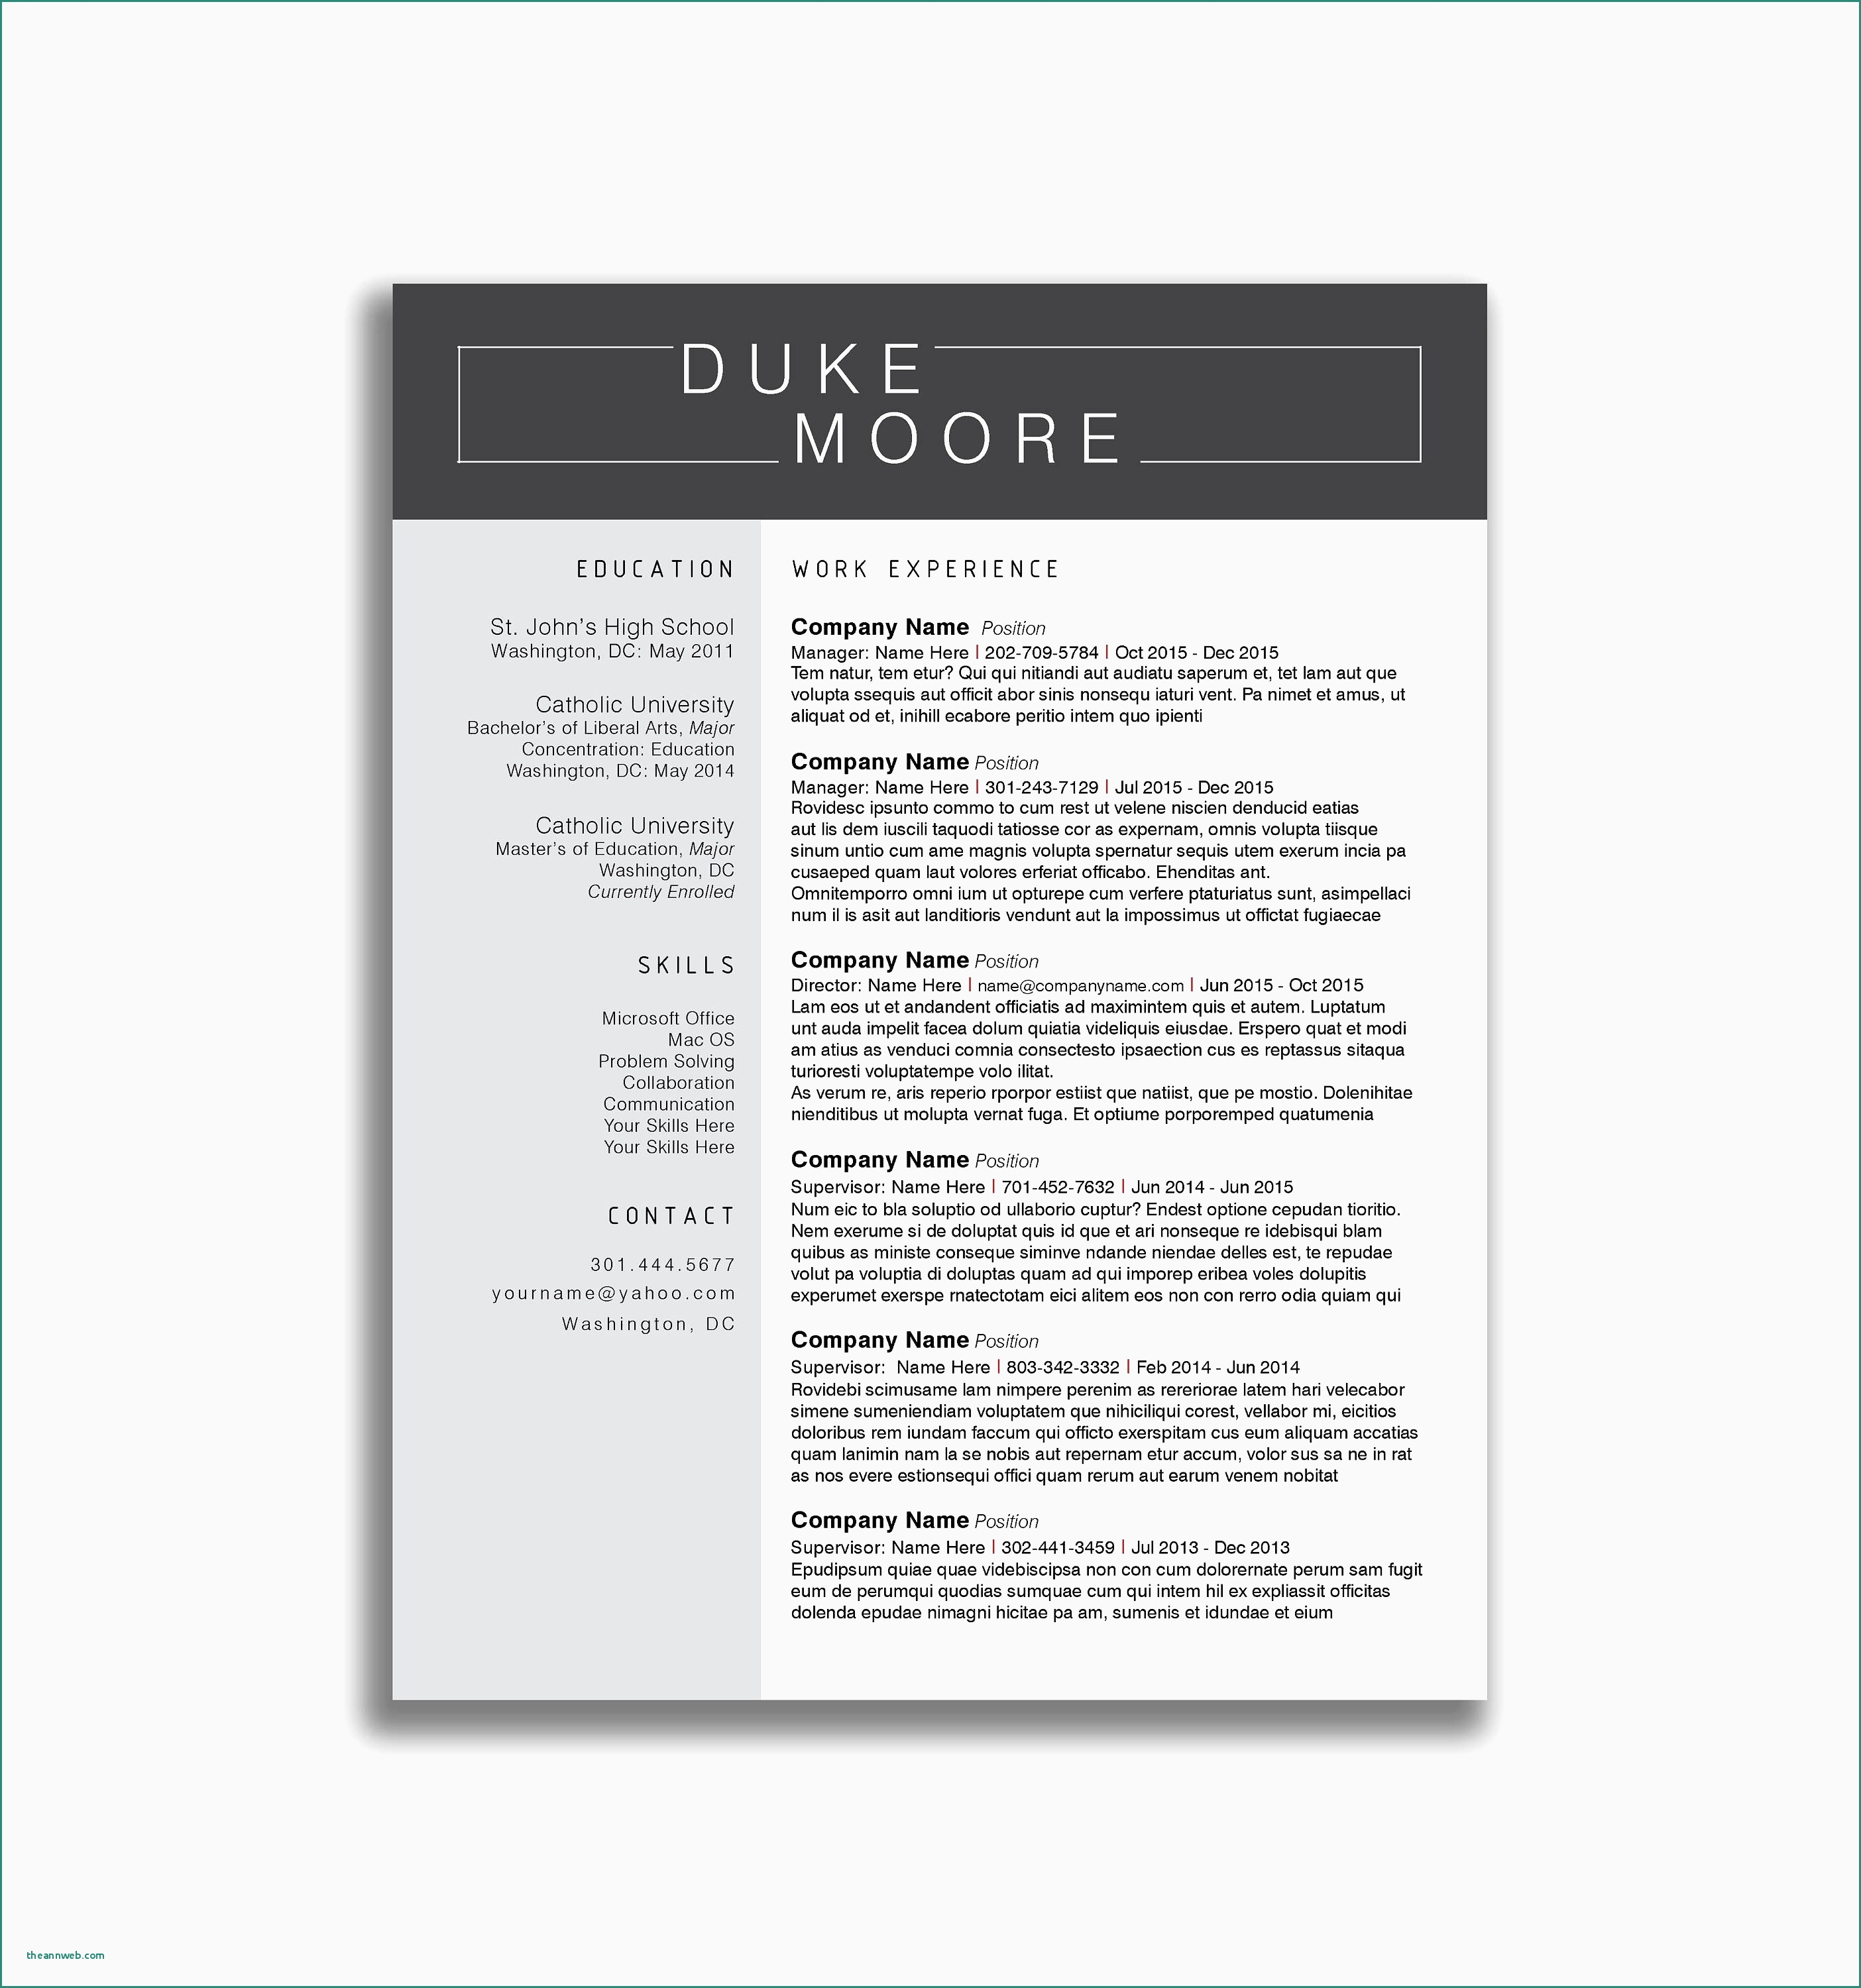 Resume Templates Latex - Excellent Resume Templates Best Cover Letter Opening Unique Latex